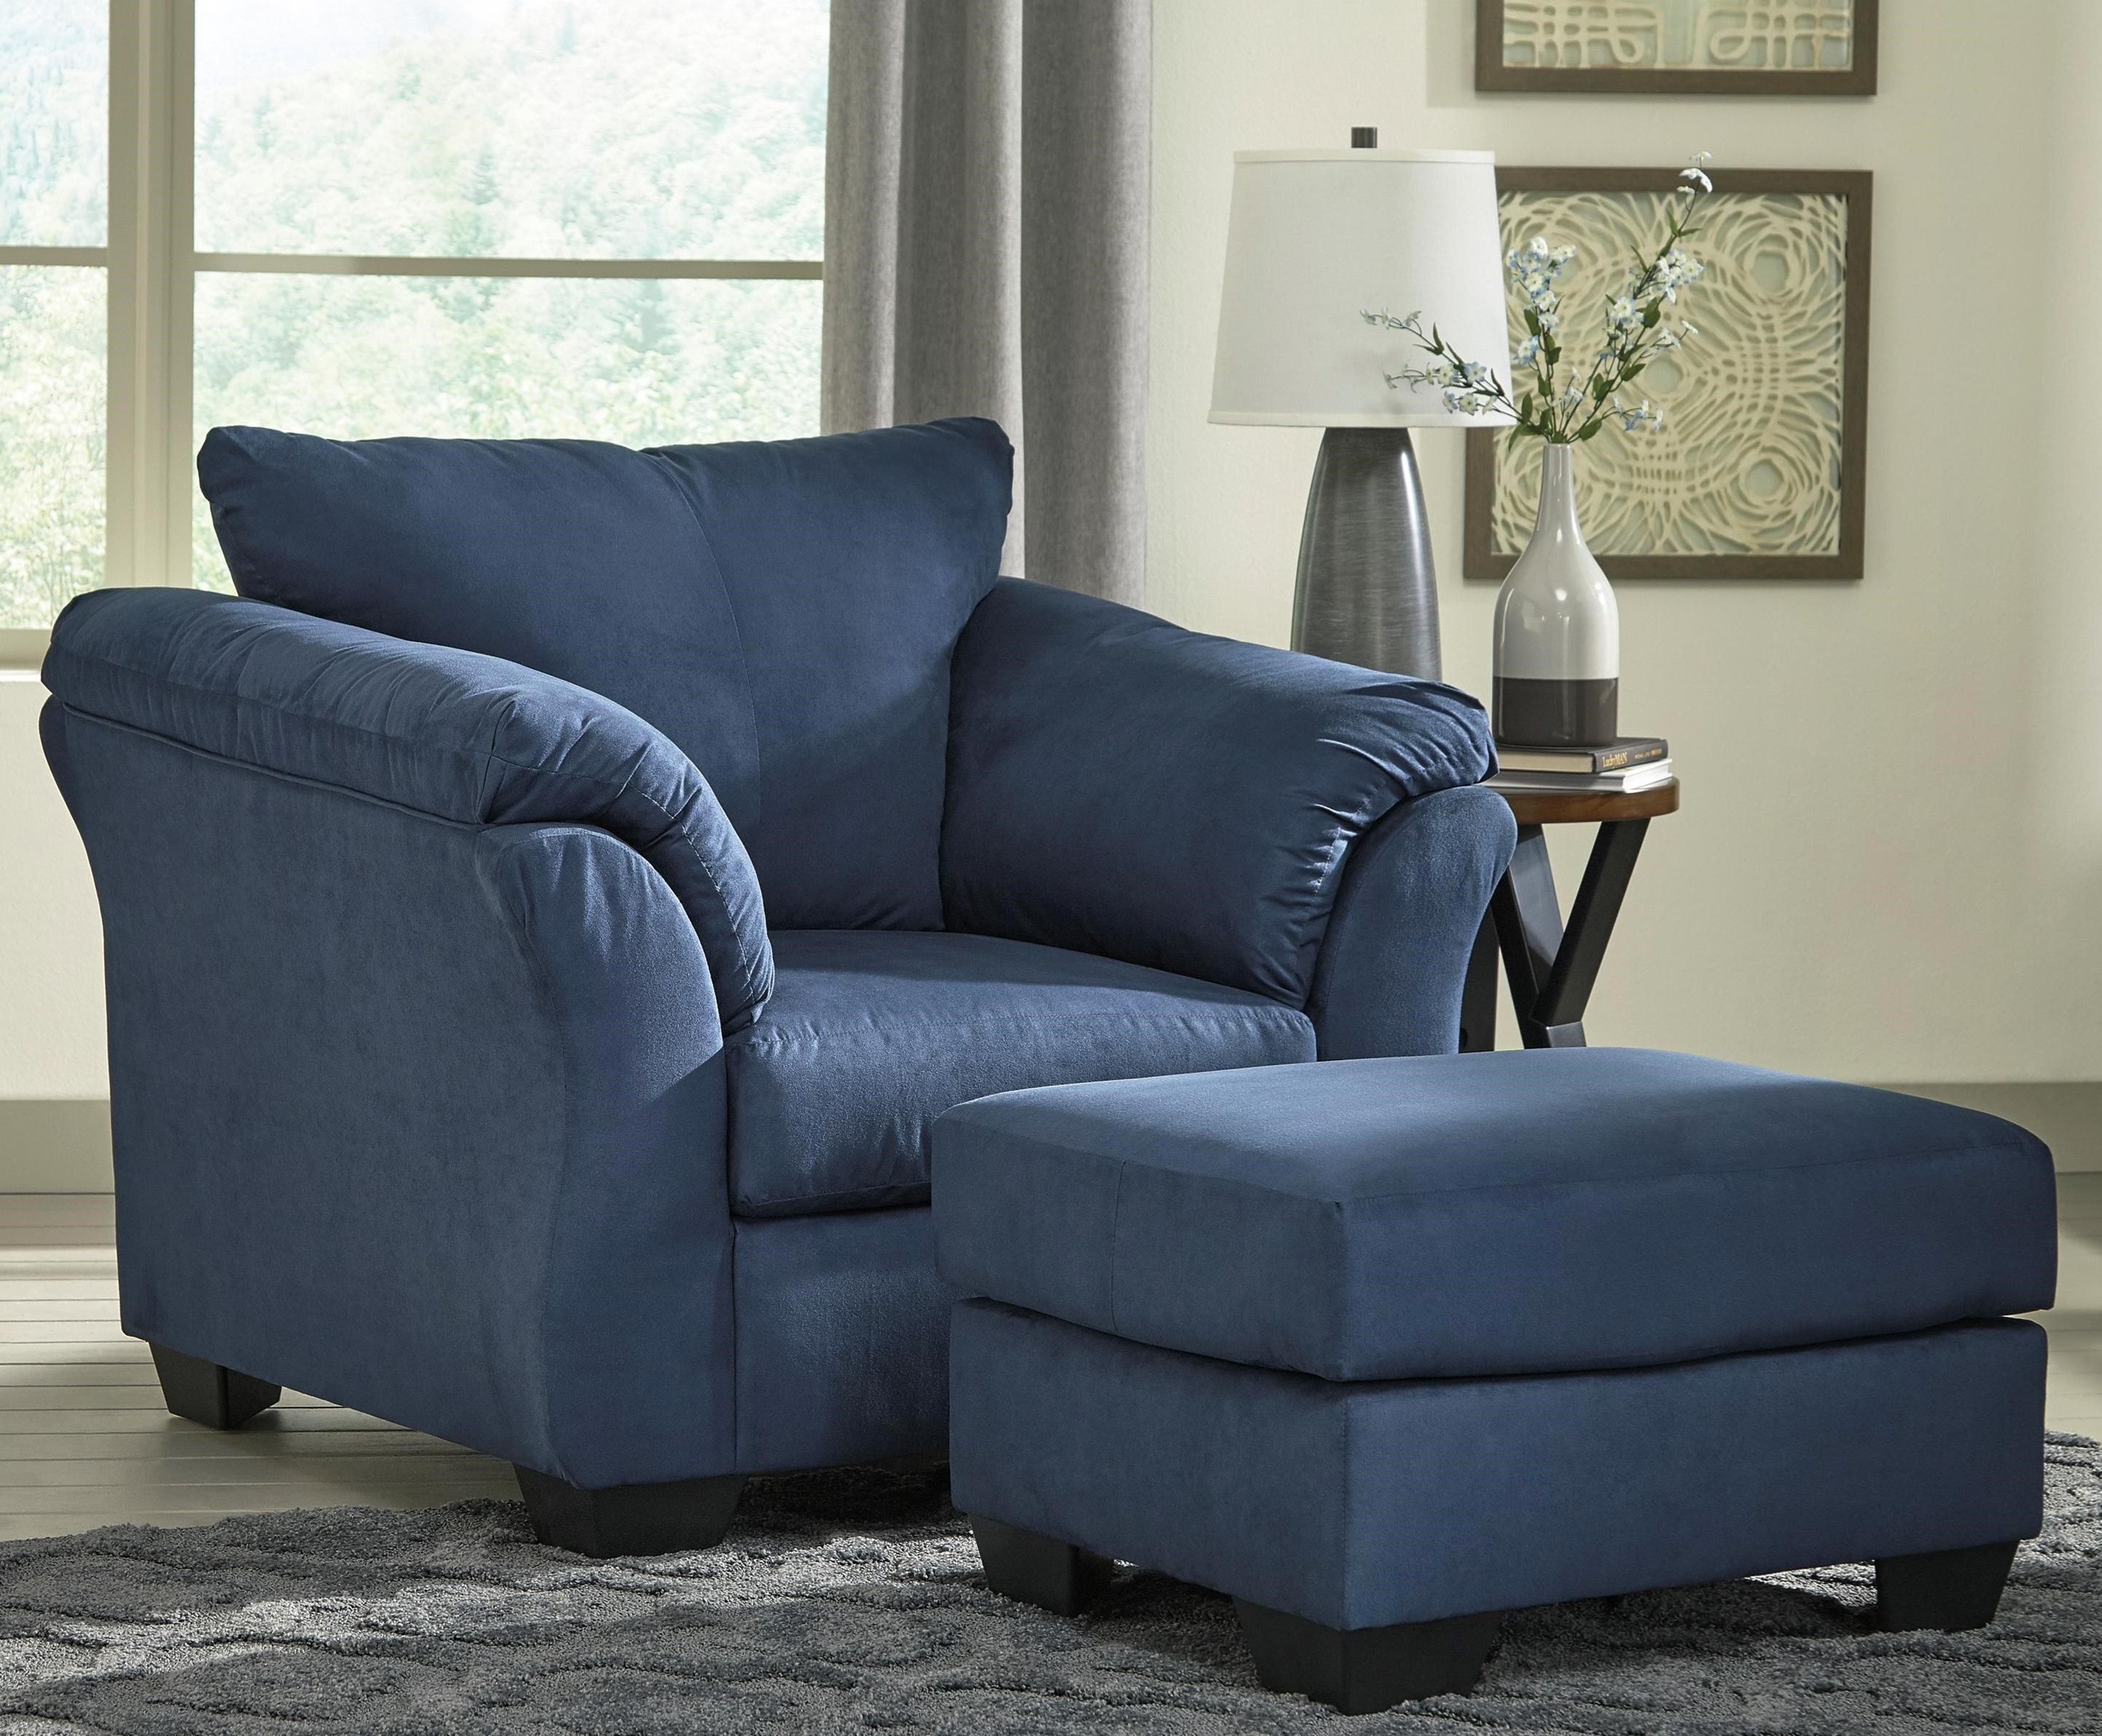 Ashley Signature Design Darcy Blue Contemporary Upholstered Chair And Ottoman With Tapered